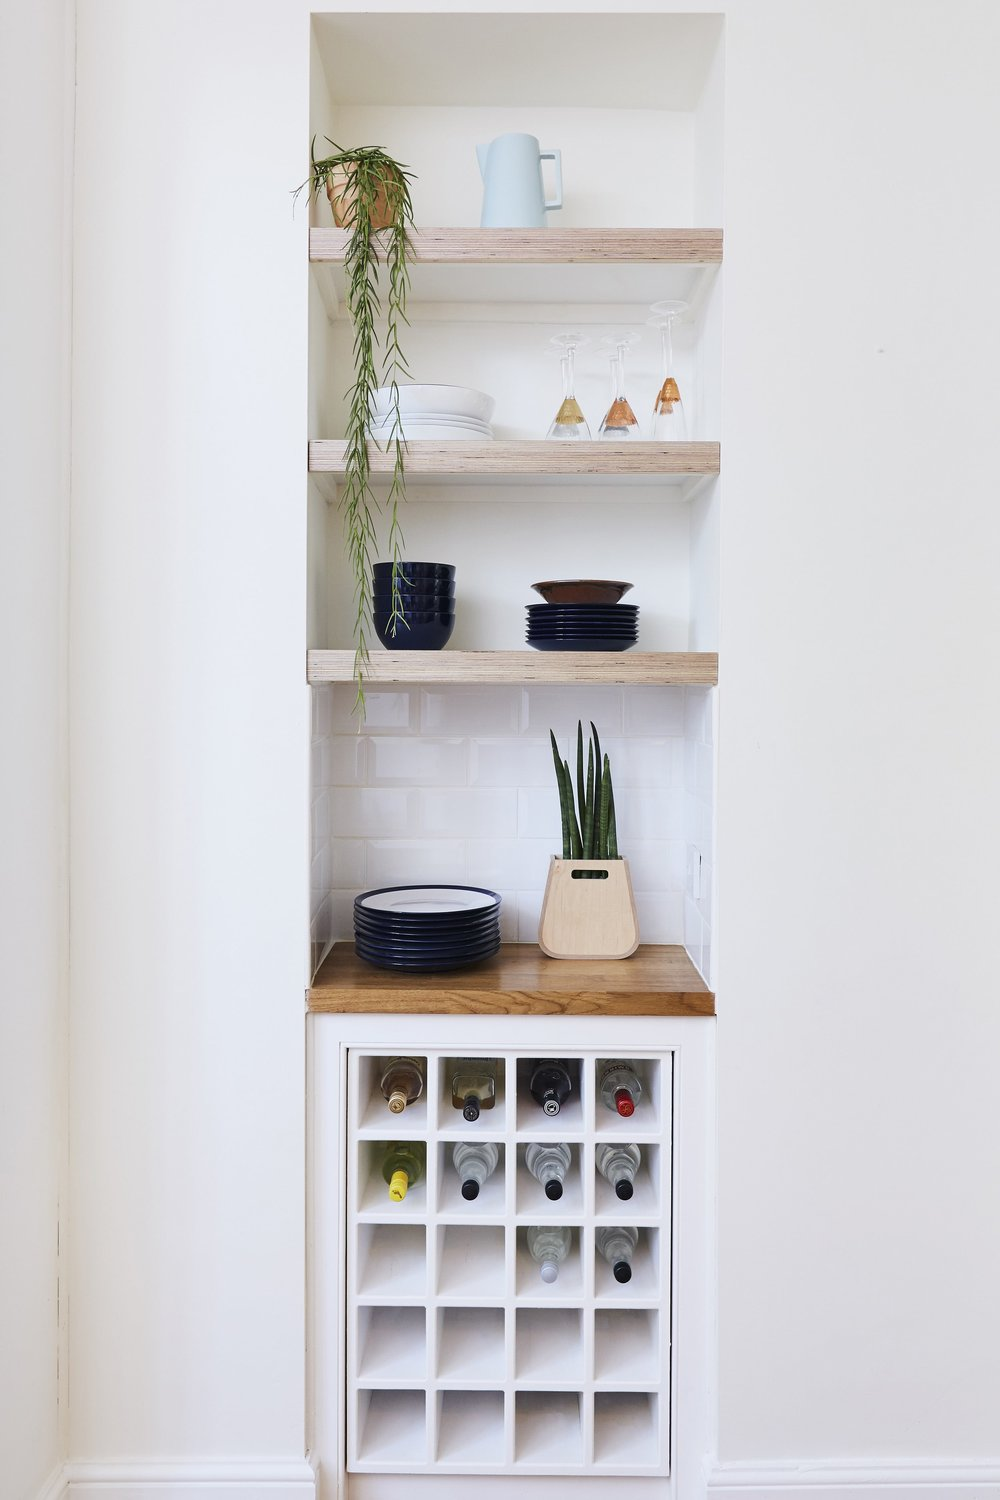 House of Lozi Alcove Shelving